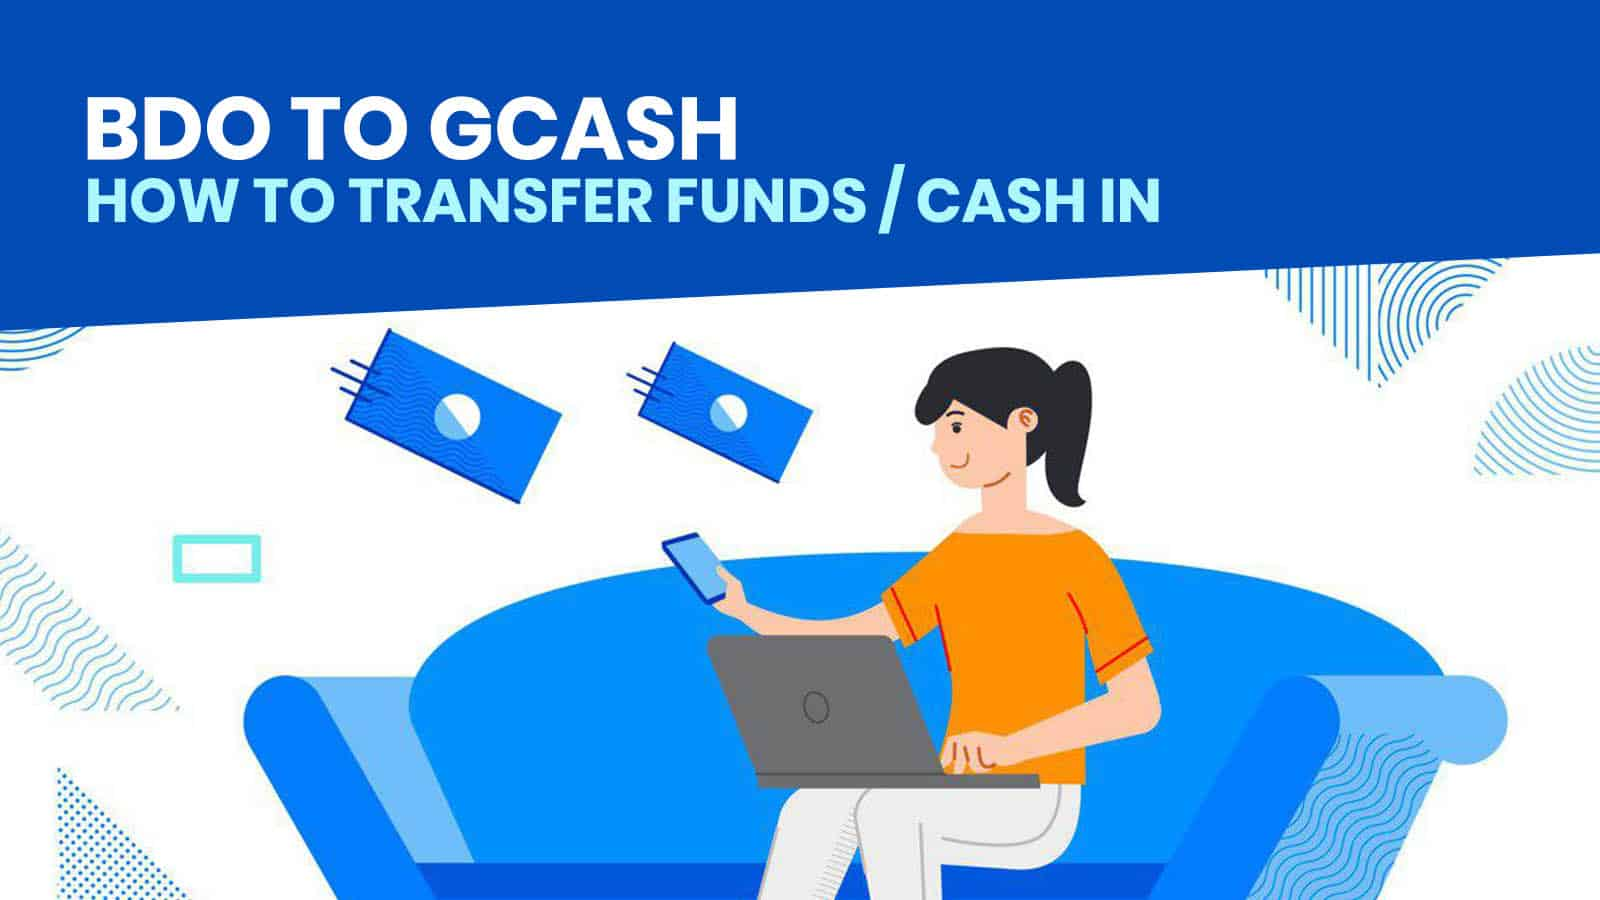 BDO TO GCASH: How to Transfer Funds Online (Payment or Cash In)